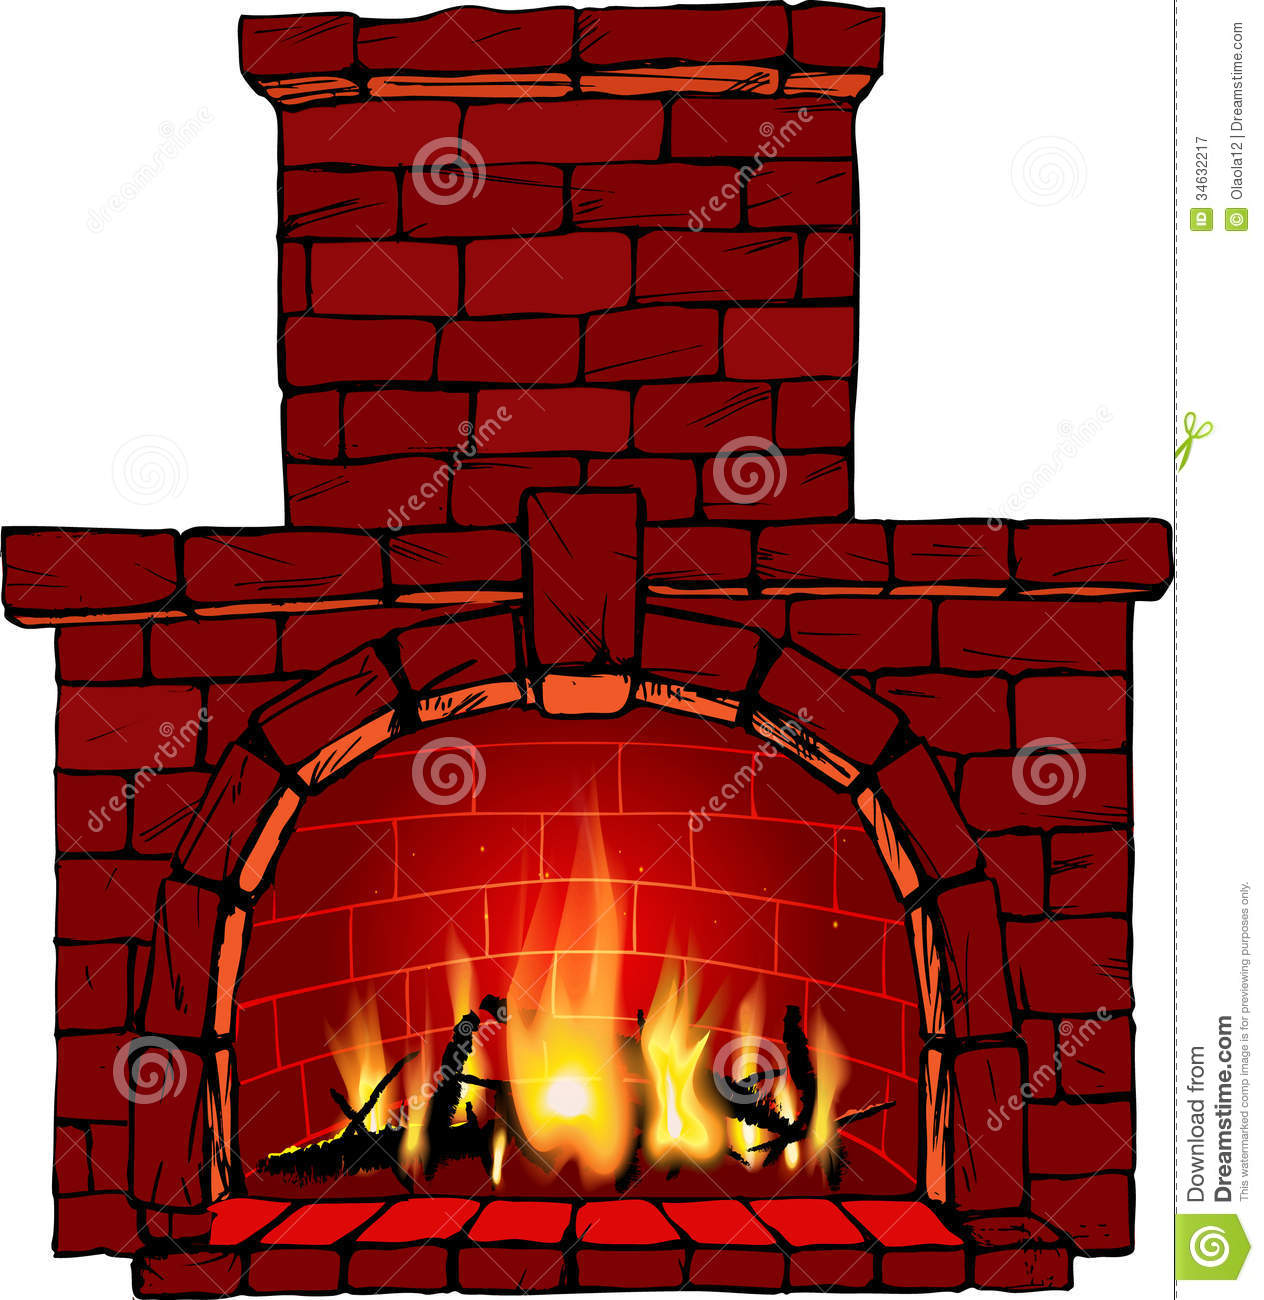 Fireplace clipart Fireplace Free cliparts Fireplace Clipart